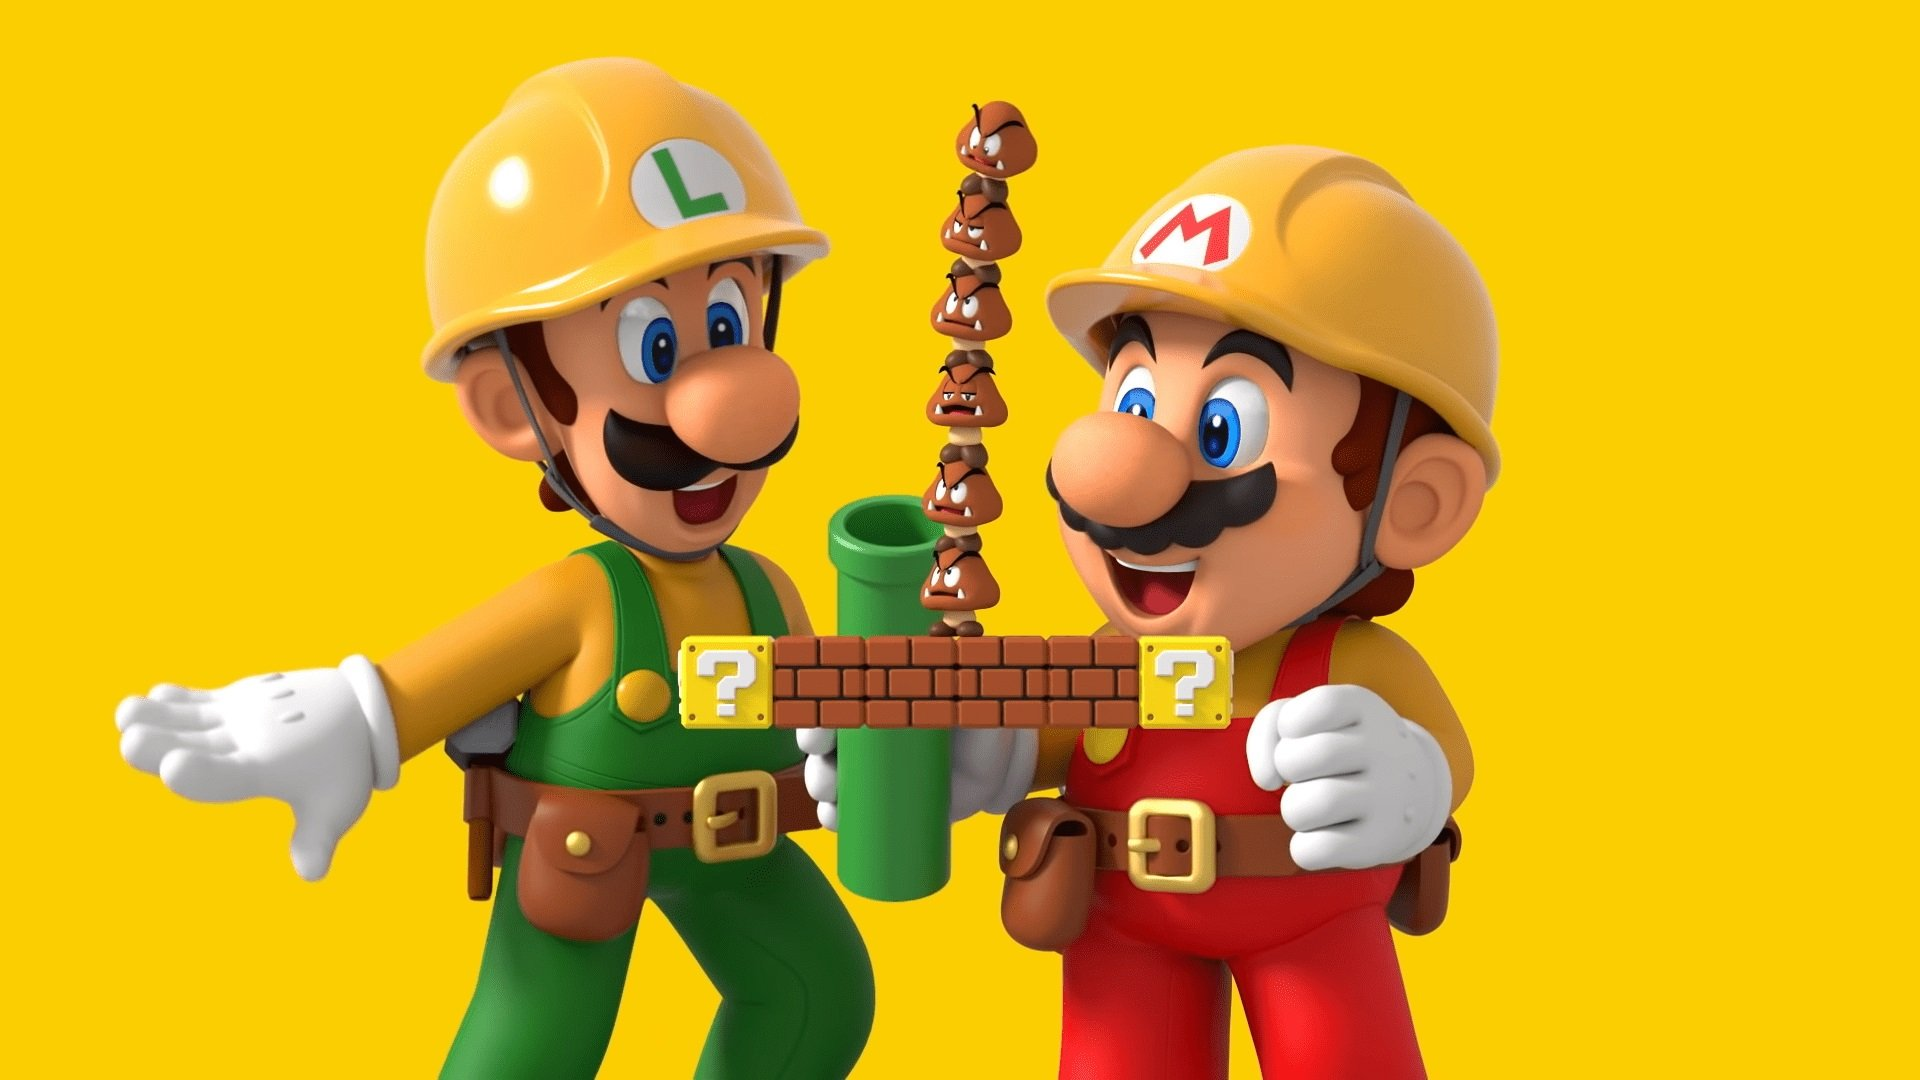 In Super Mario Maker 2, you can Scroll Stop by creating a column of hard blocks either horizontally or vertically.